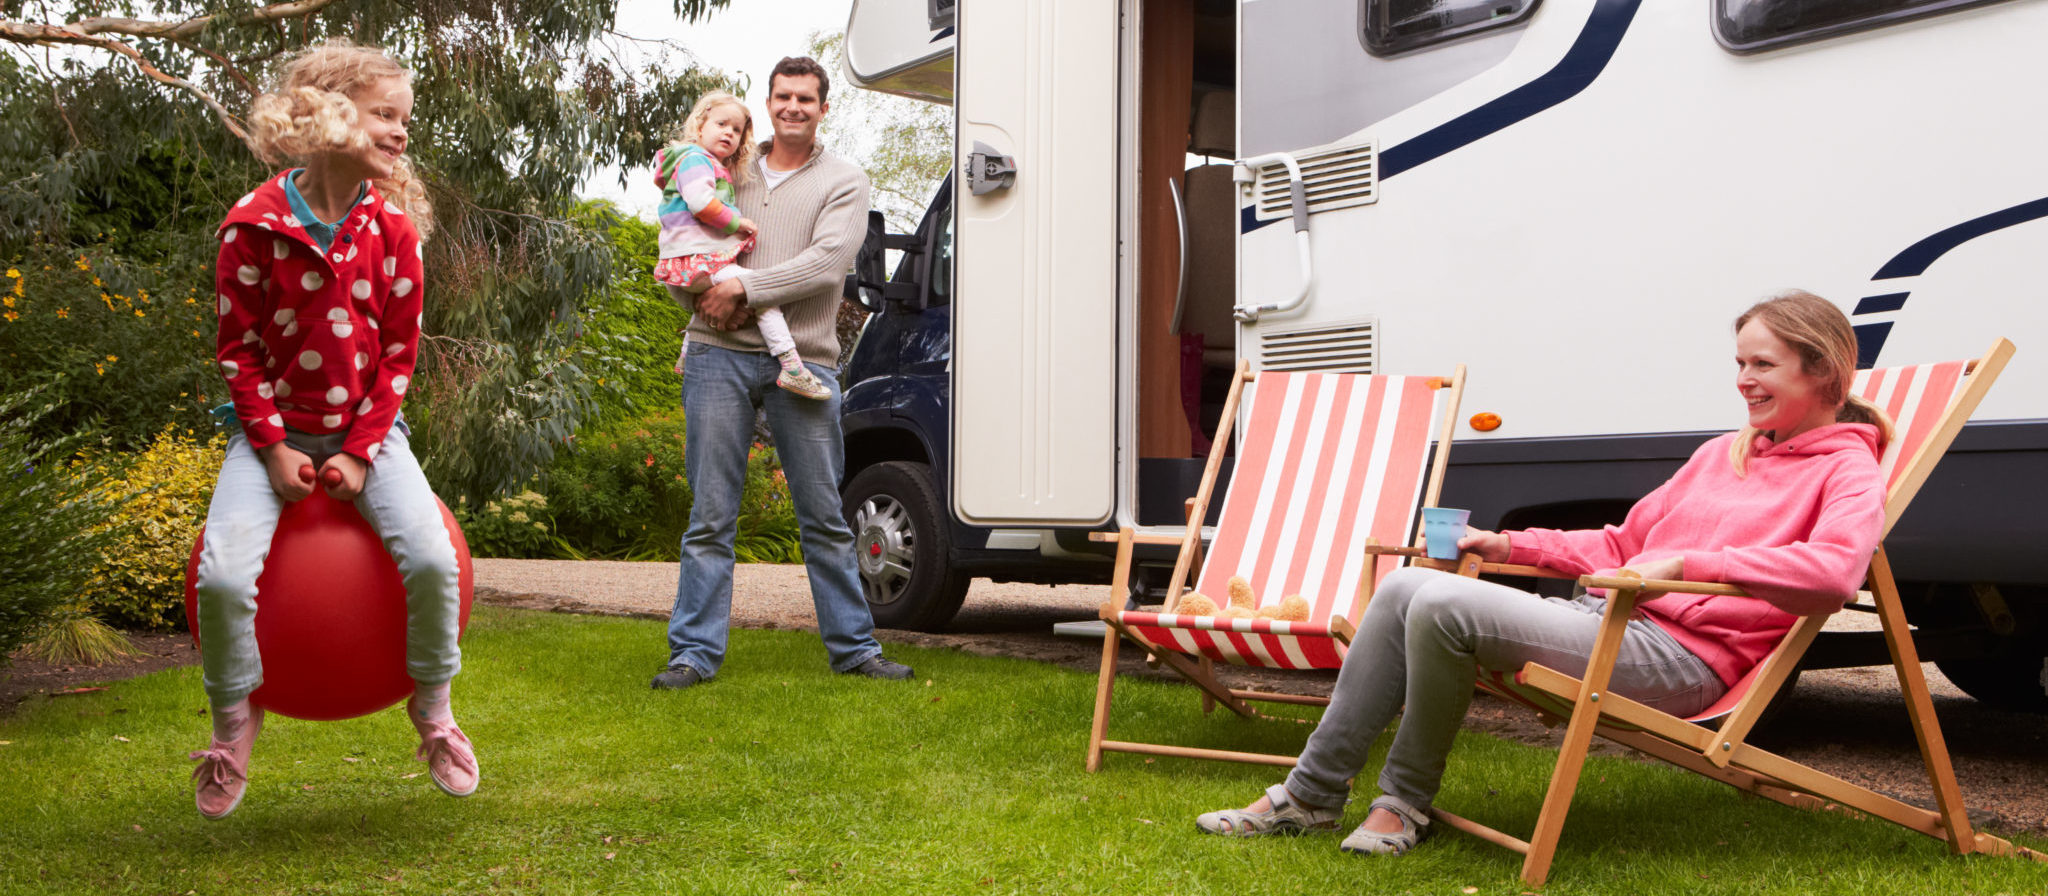 Family camping trips are so often a wonderful bonding experience, fun for people of all ages.